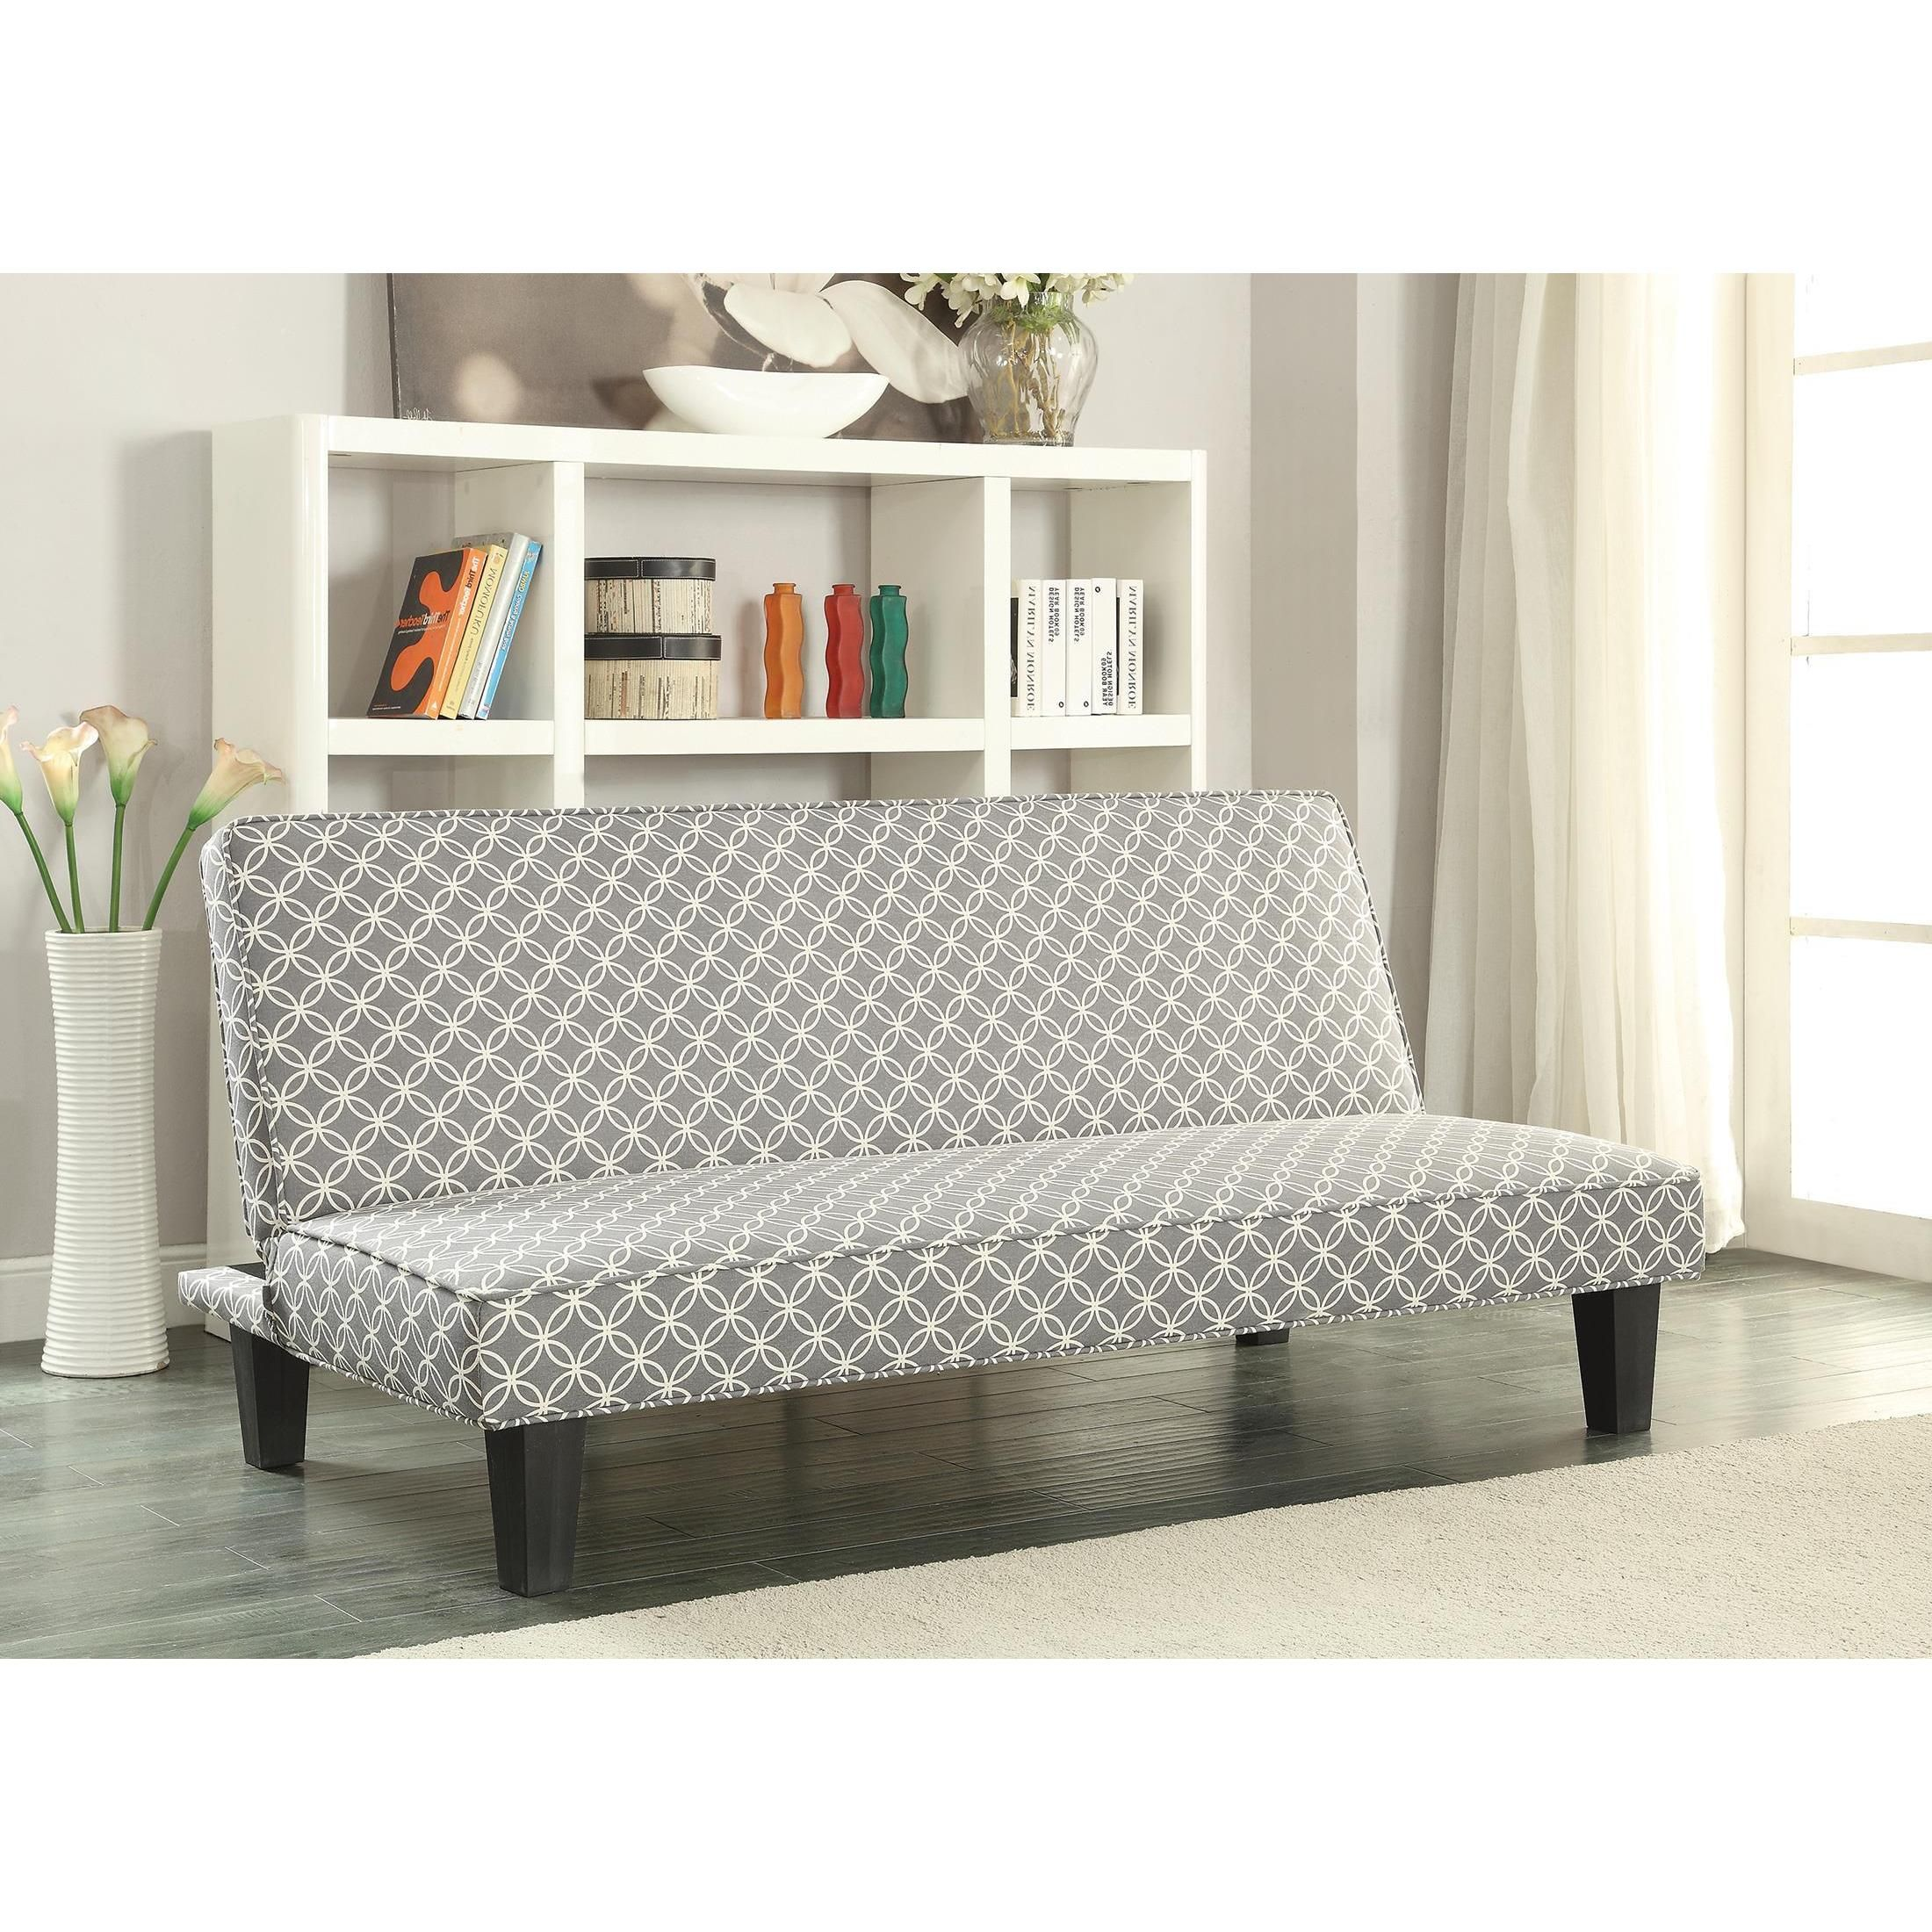 gray rug room white living wonderful and on looks glass table sofa you grey offers corner splendid velvet patterned couch square fur for sectional plus cushions